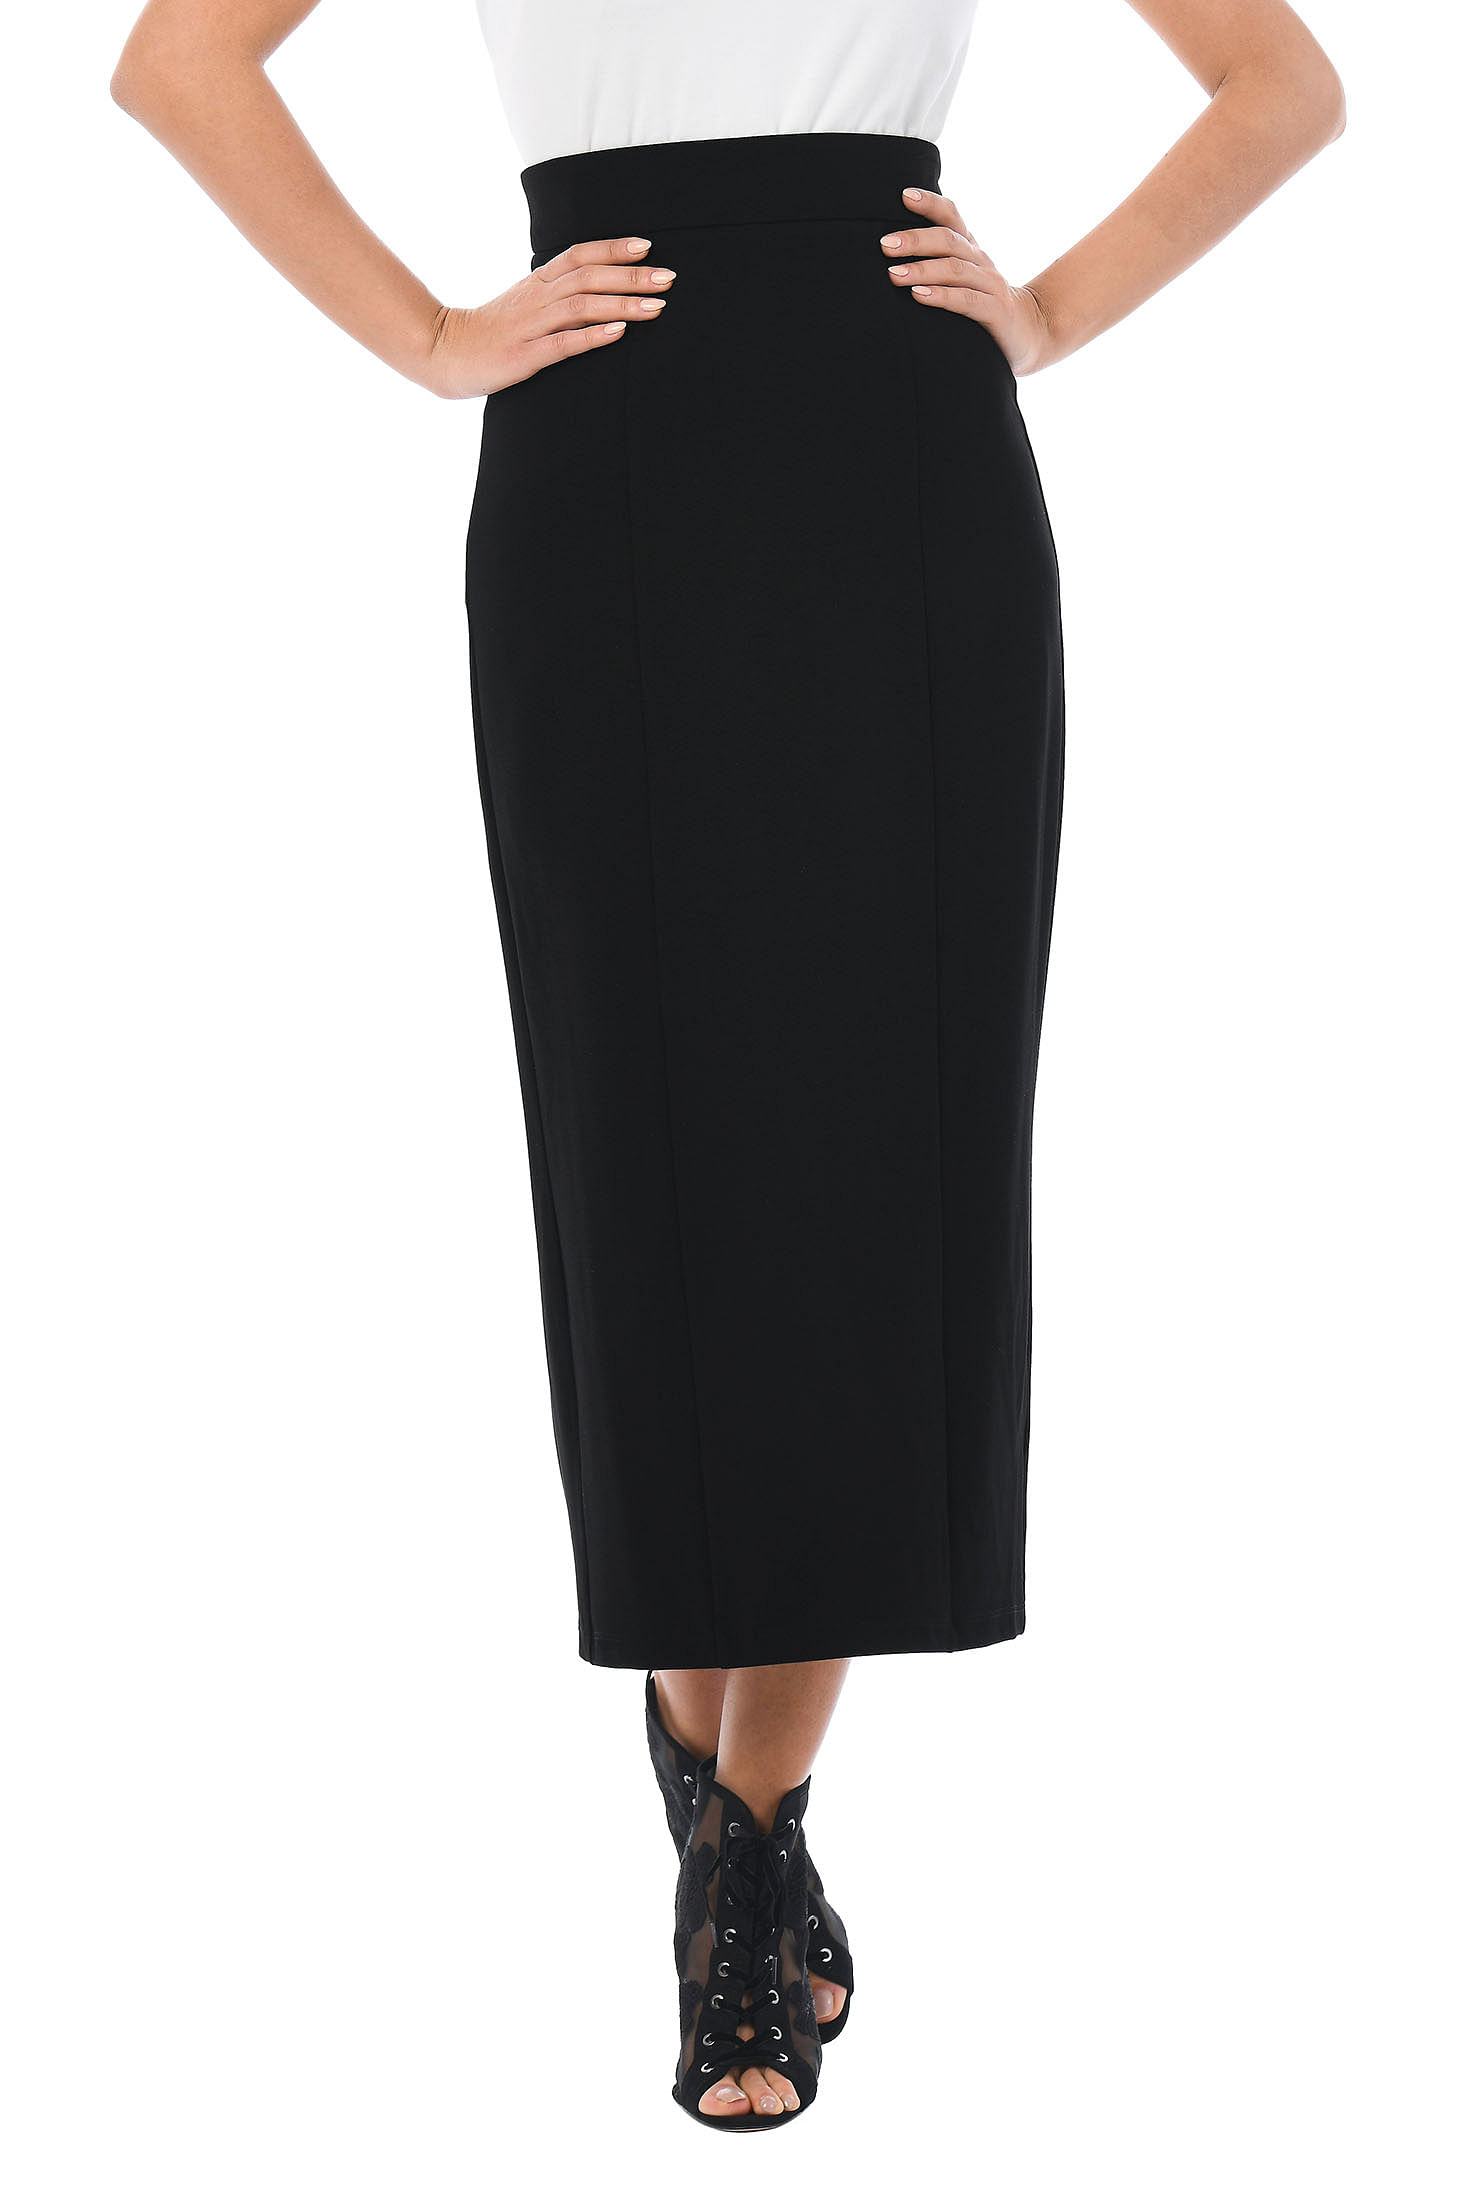 357d70bf7e above ankle length skirts, Back vent skirts, elastic back waist skirts,  heavier